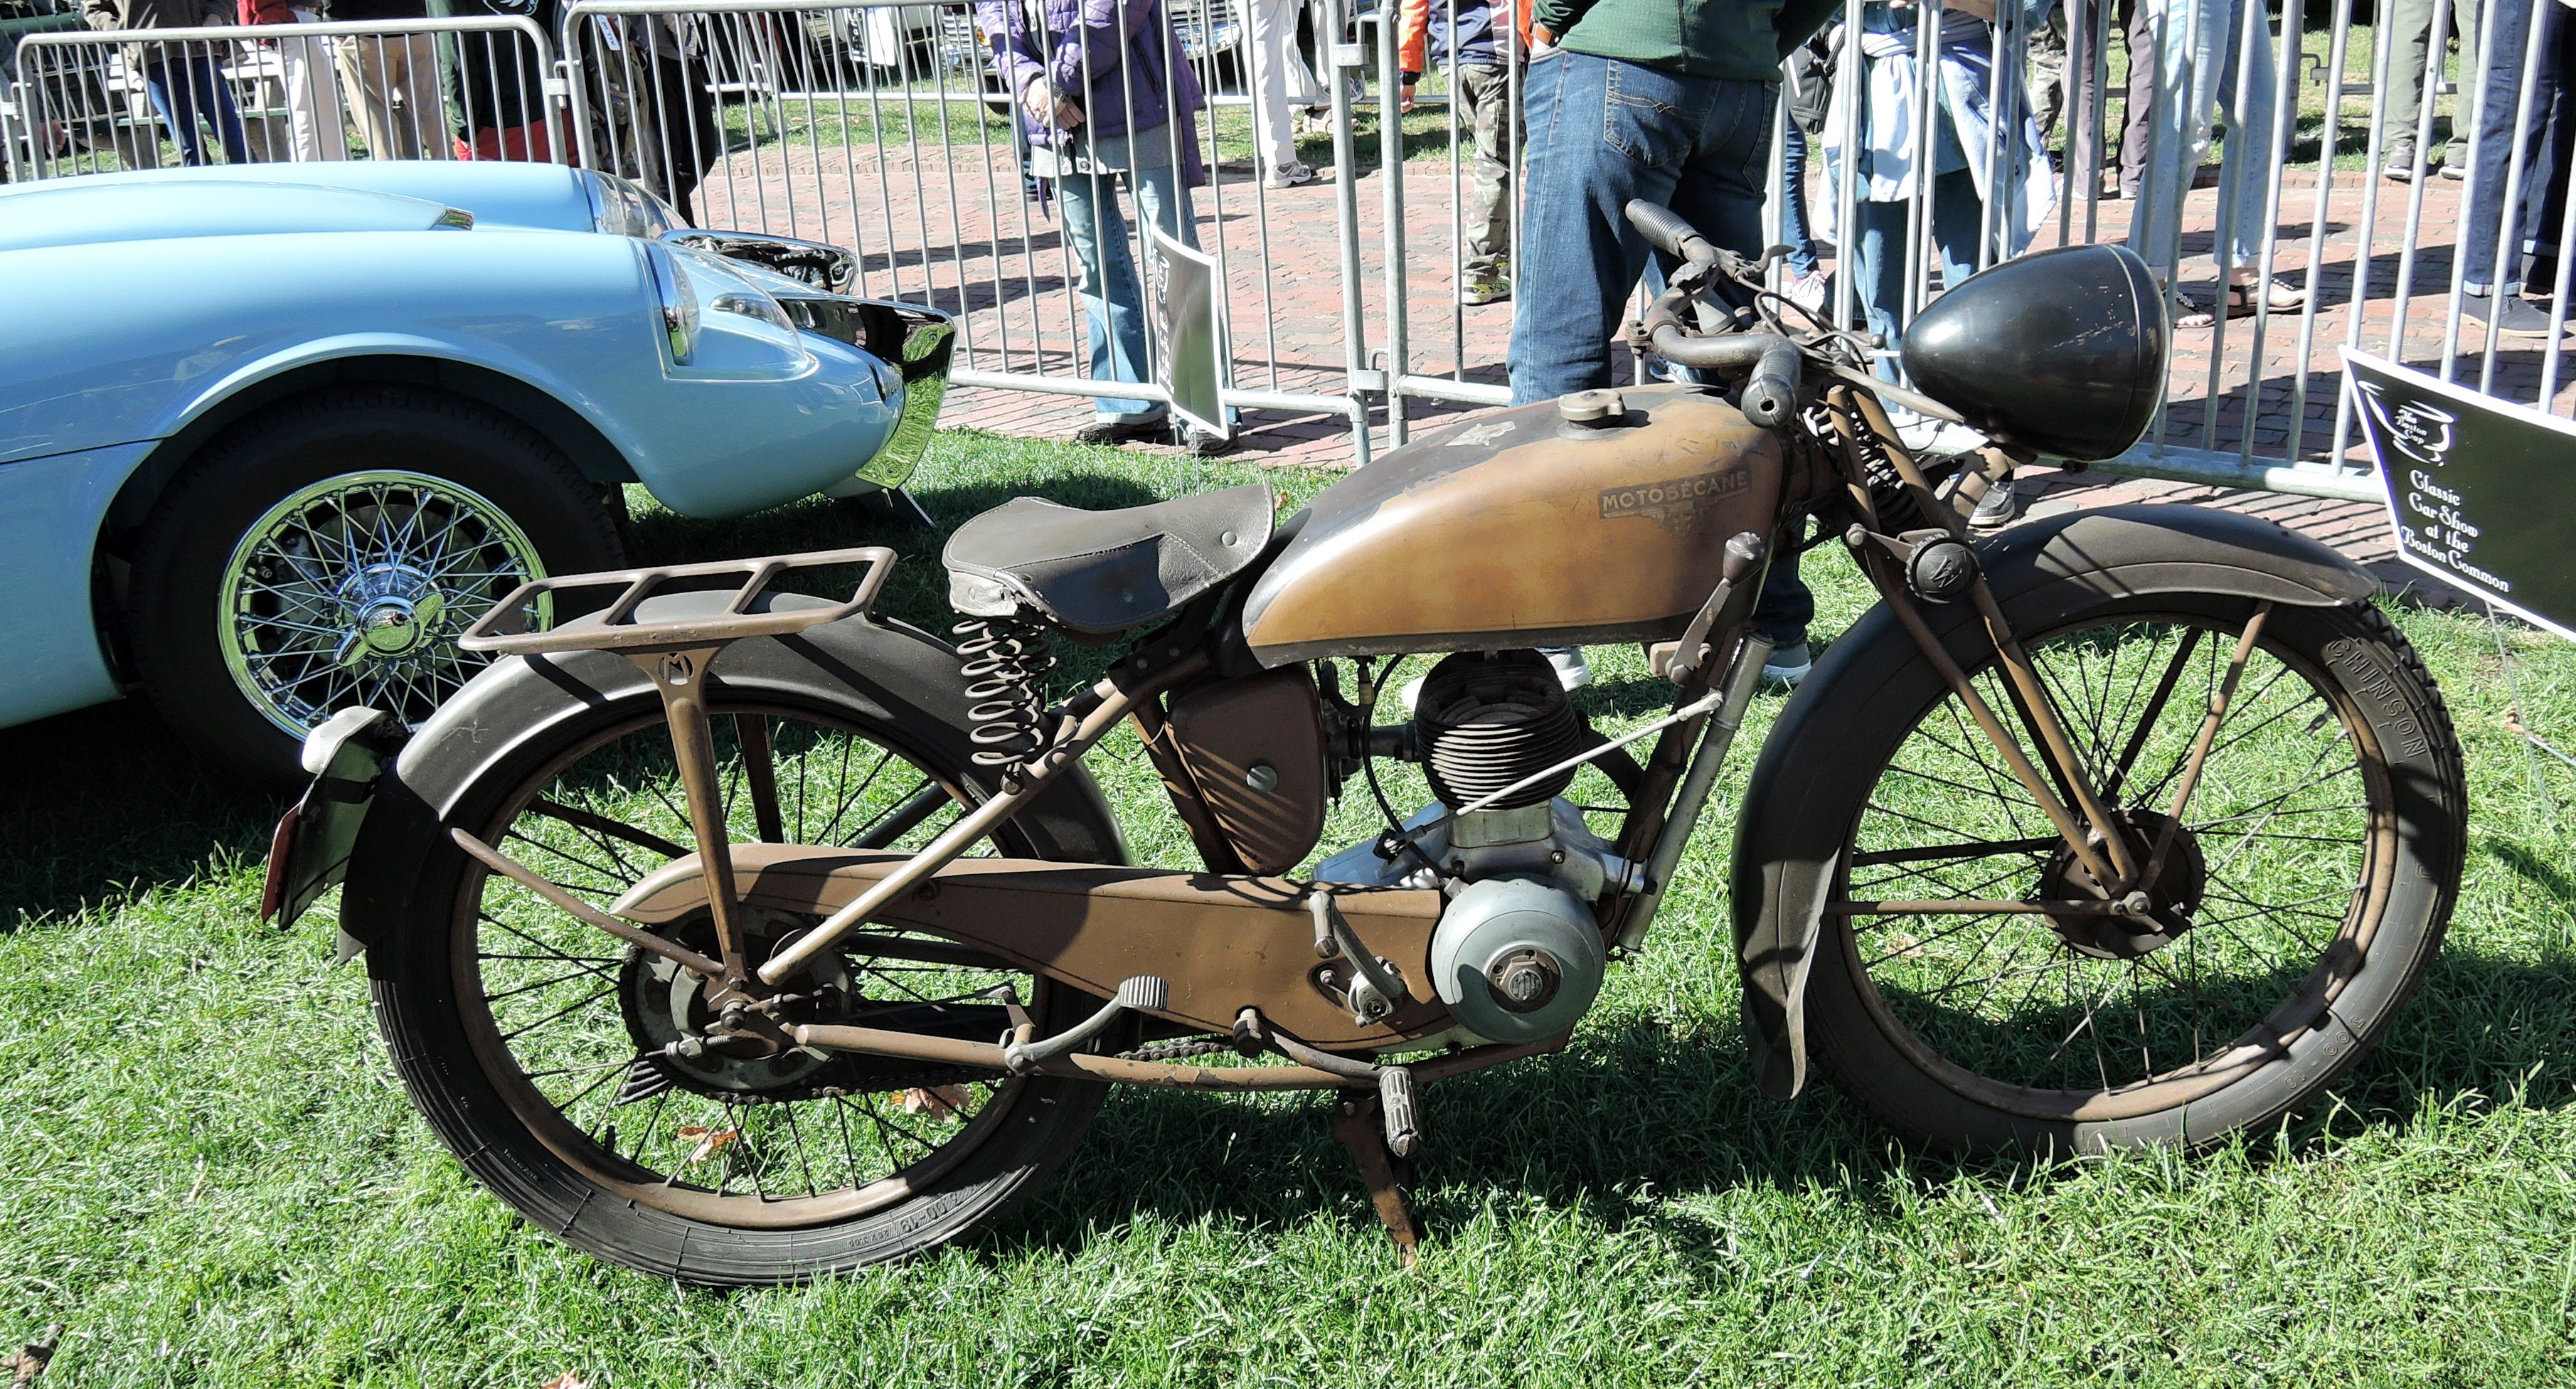 brown 1945 Motobecane D45 - The Boston Cup on Boston Common